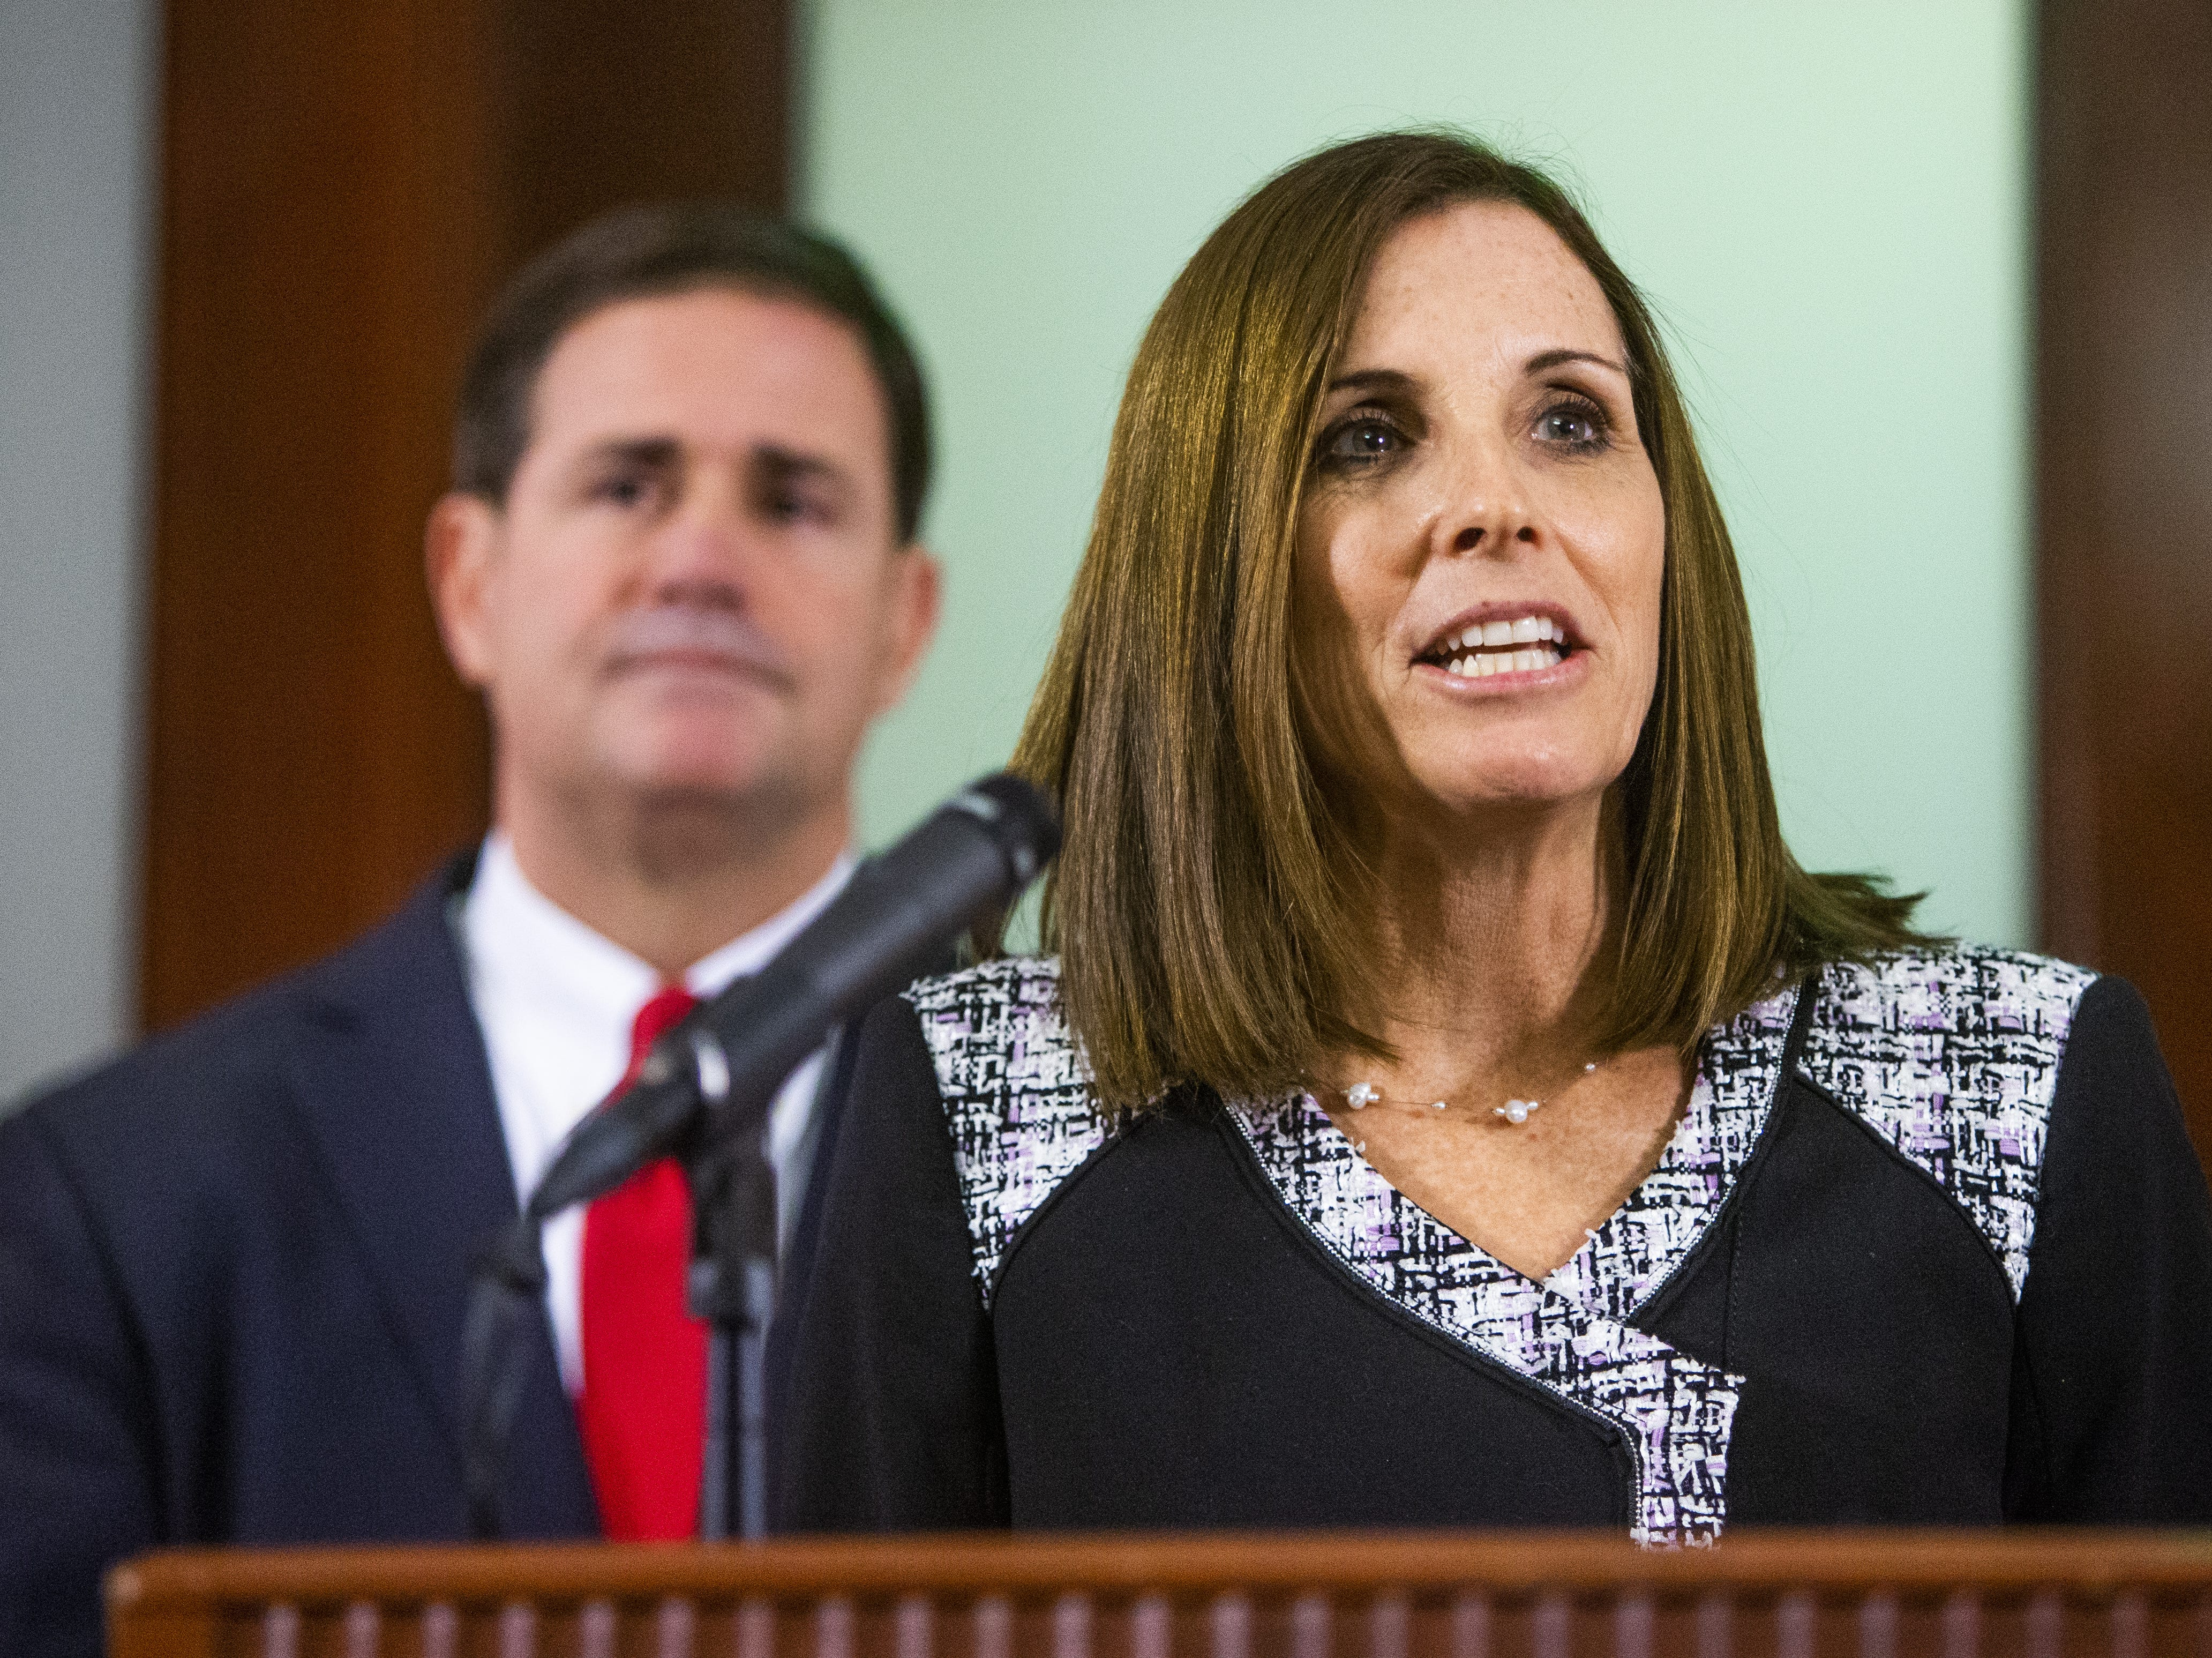 Rep. Martha McSally speaks to the press Dec. 18, 2018, after Gov. Doug Ducey announced that she will fill out the remainder of Sen. John McCain's Senate term.